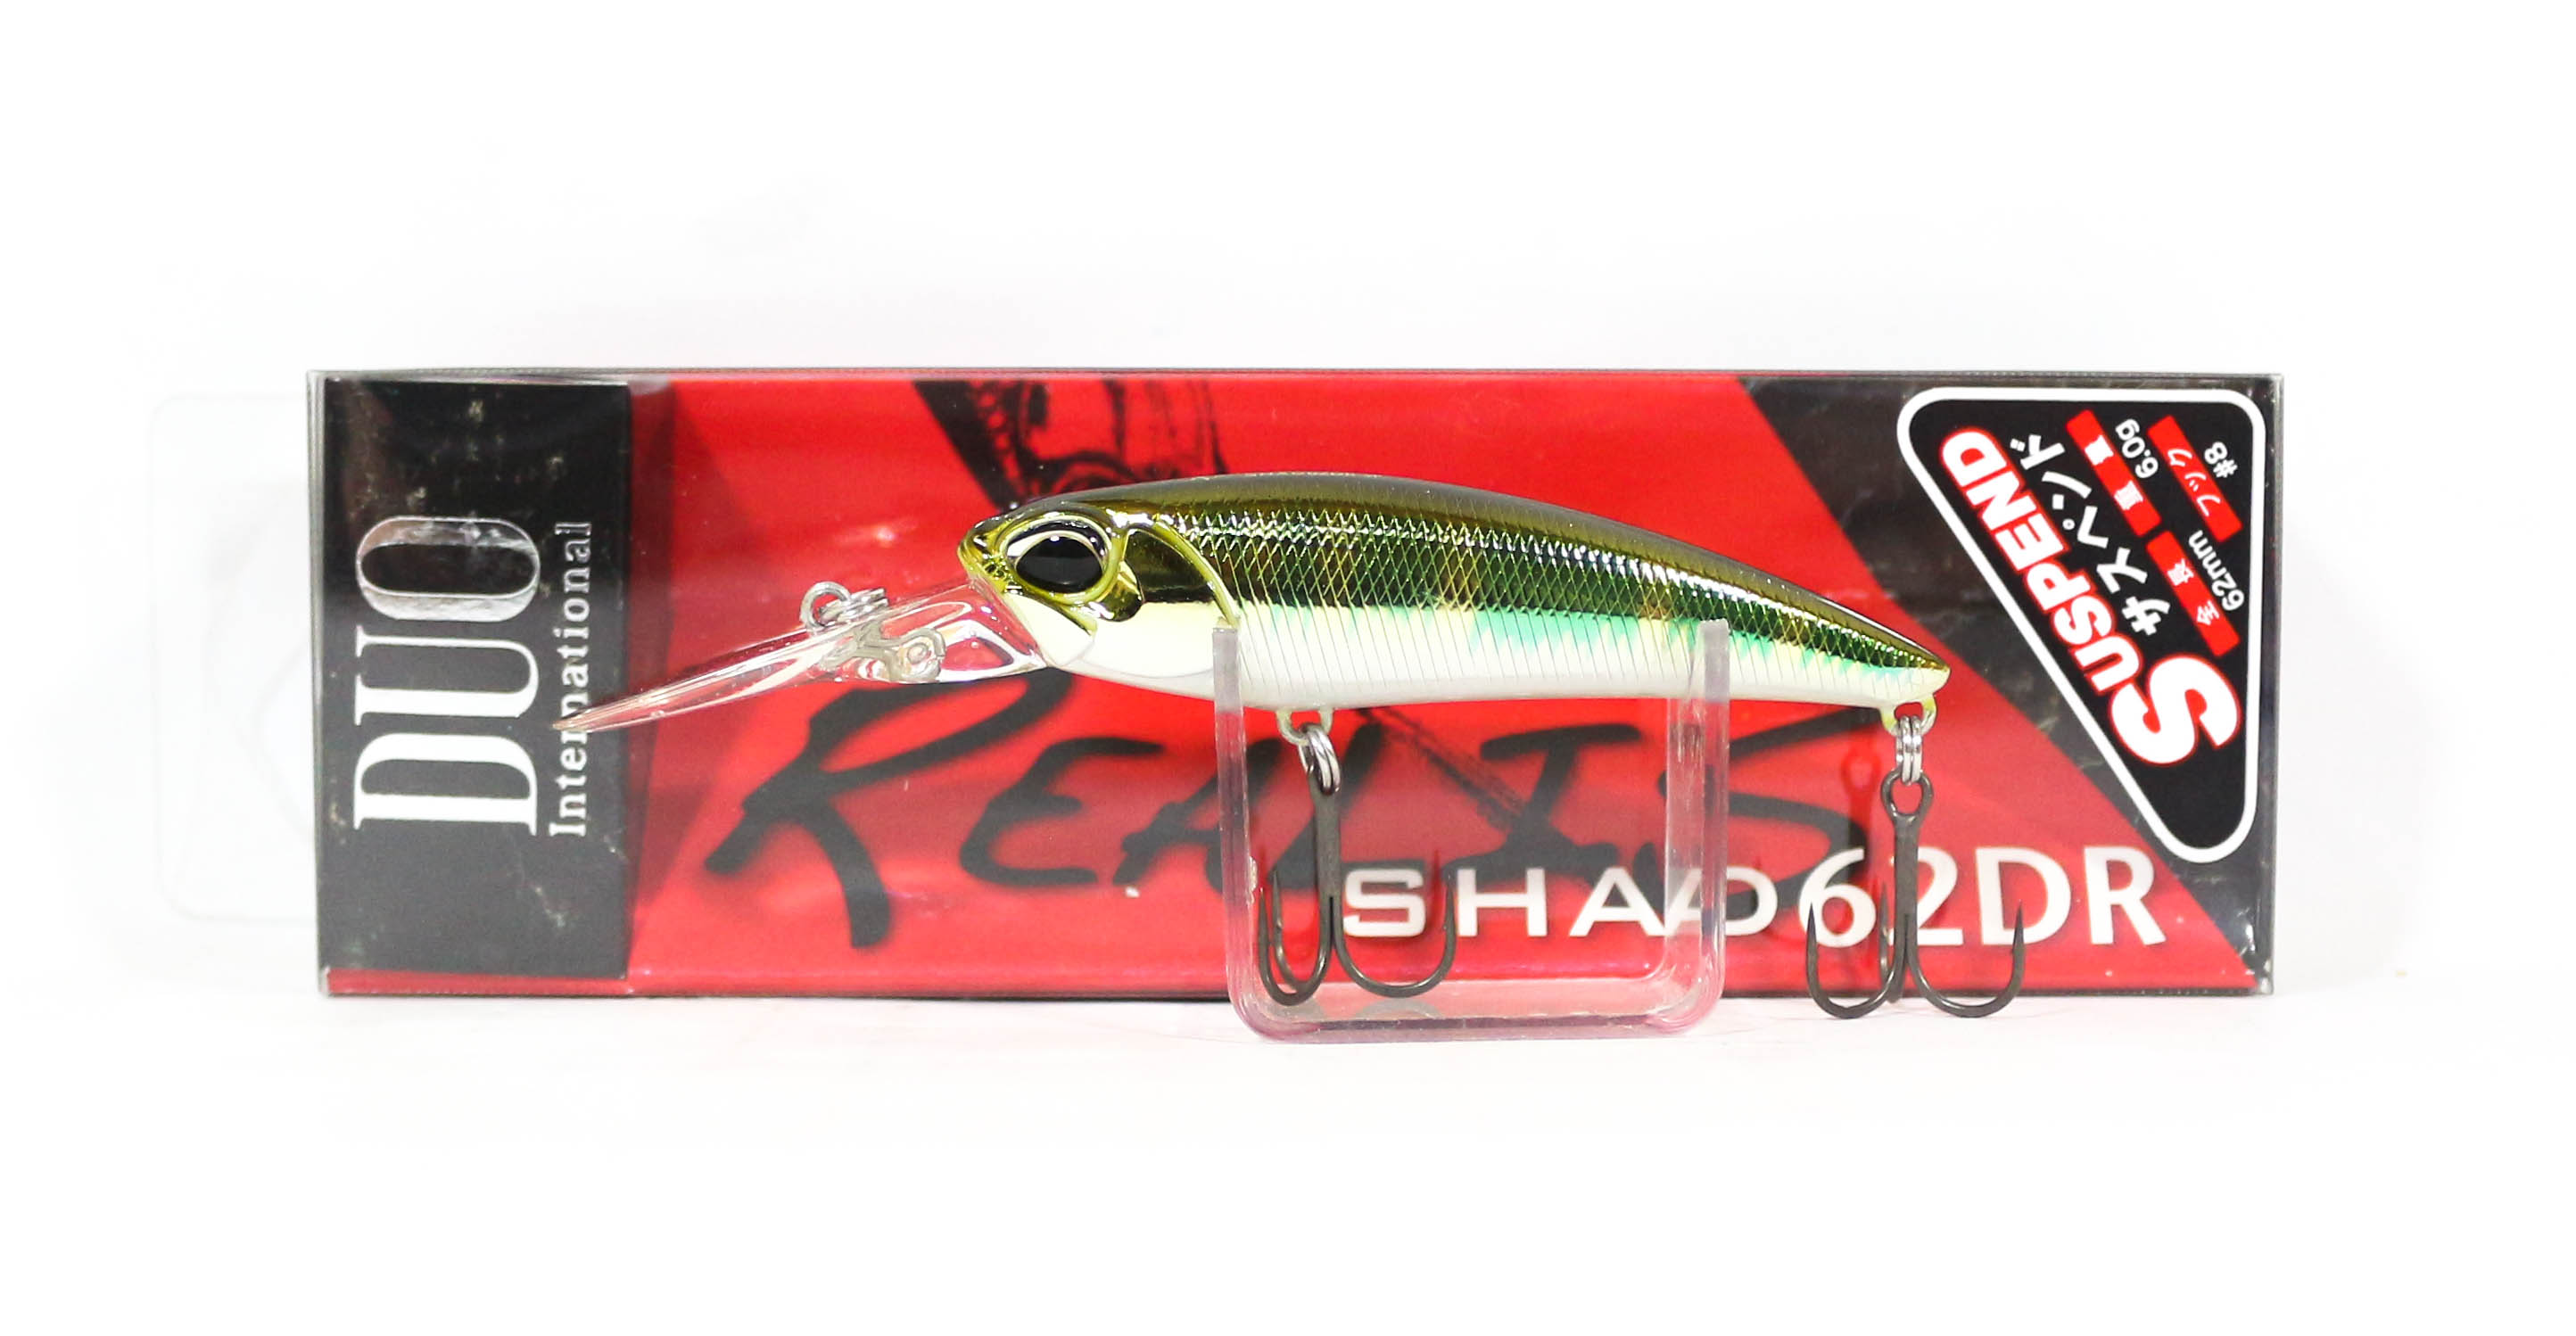 Duo Realis Shad 62 DR Suspend Lure ASA3082 (0190)